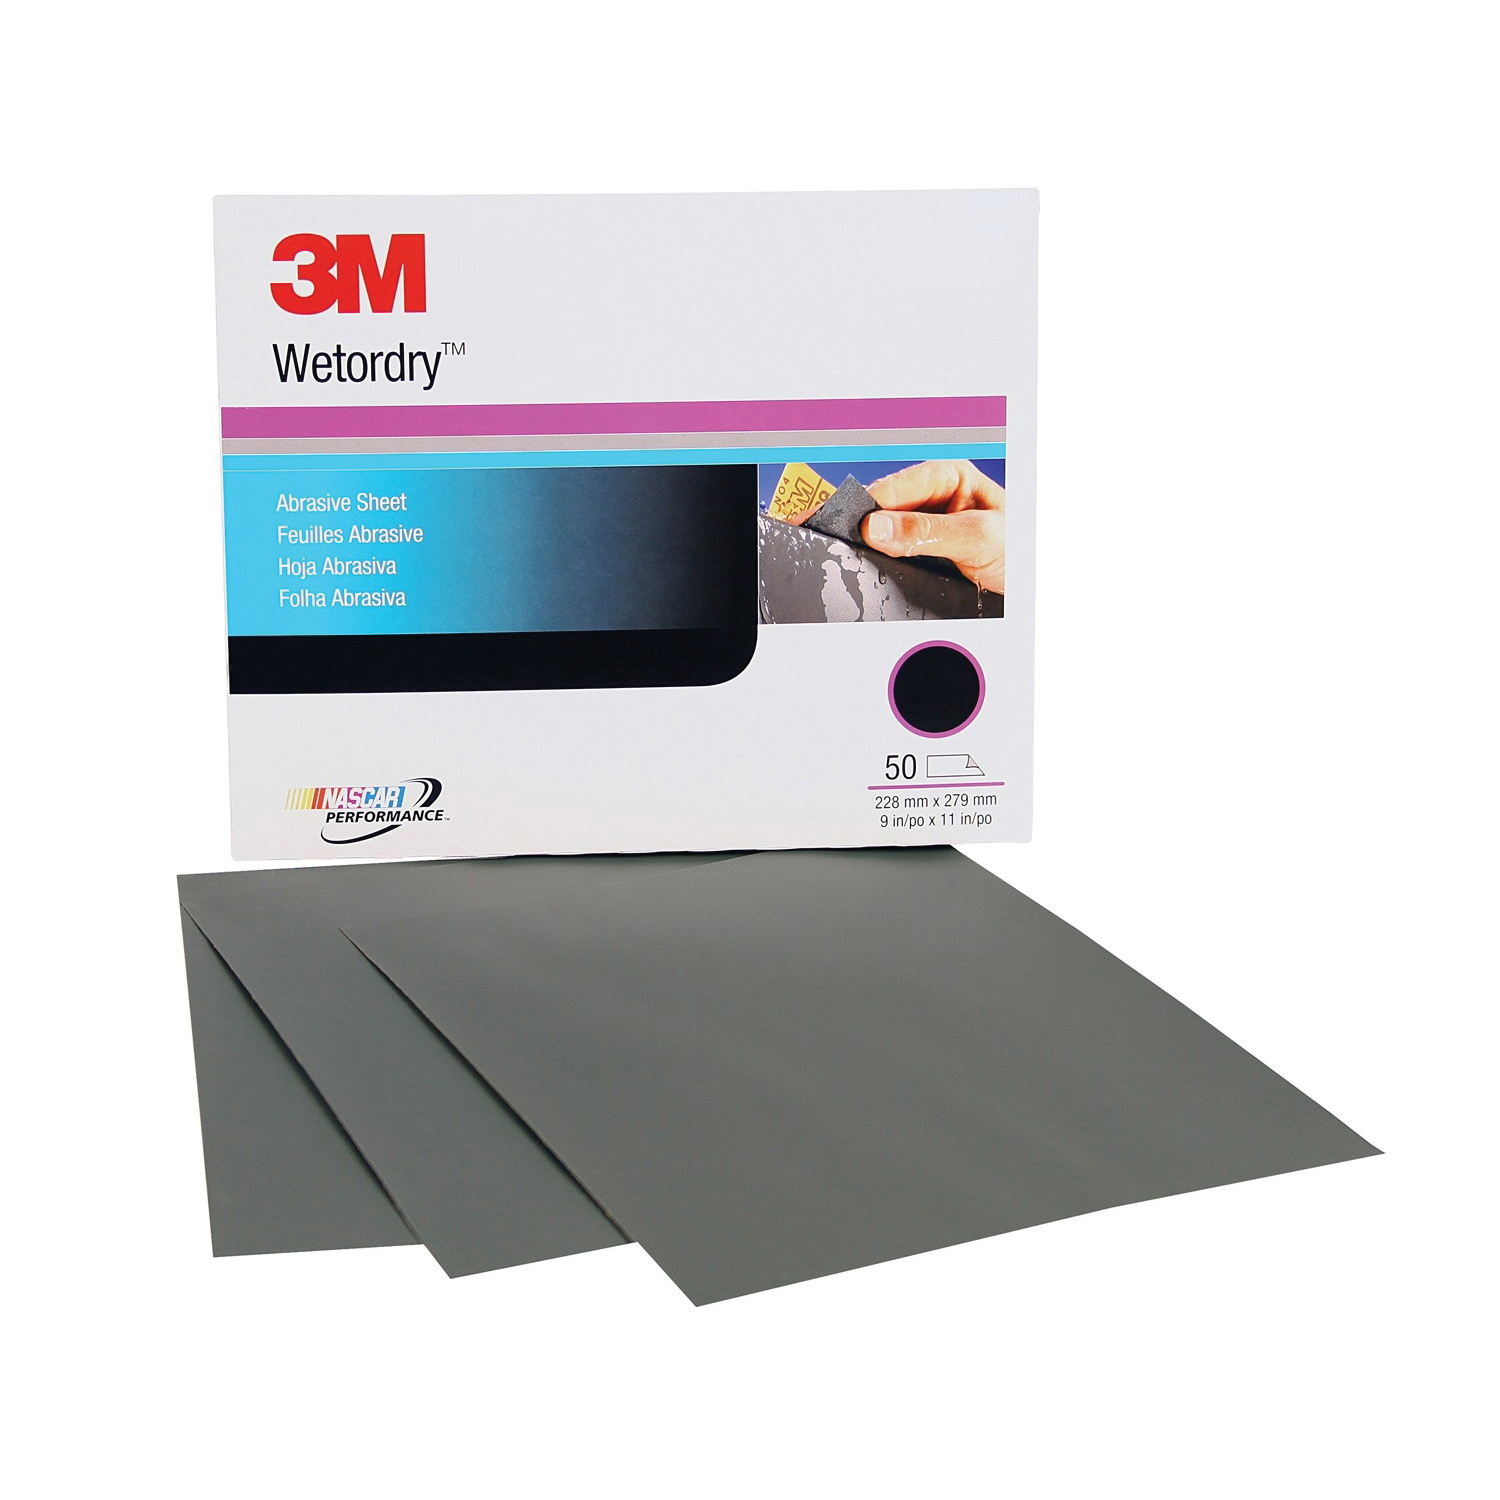 Wetordry™ 051131-02032 Waterproof Coated Sanding Sheet, 11 in L x 9 in W, P1500 Grit, Fine Grade, Silicon Carbide Abrasive, Paper Backing